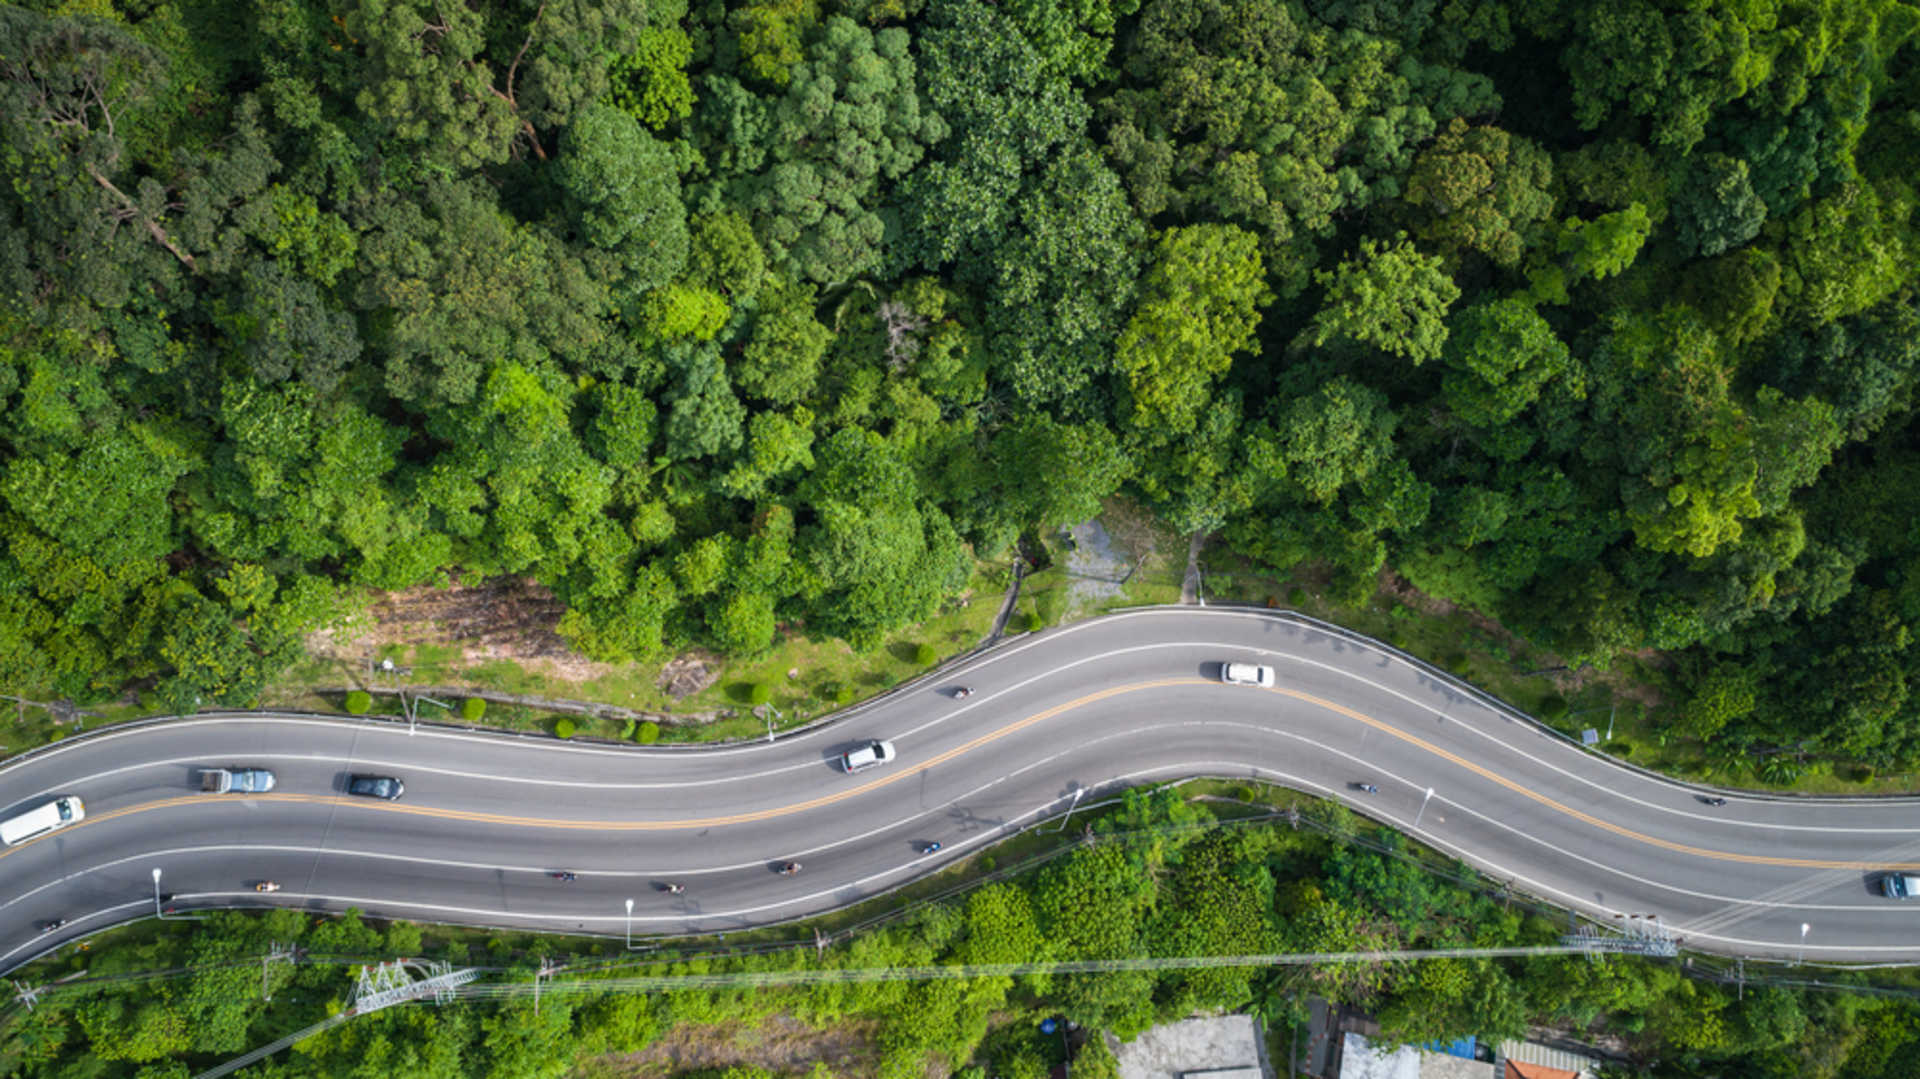 stock-photo-top-view-car-and-road-on-the-hill-in-phuket-thailand-aerial-view-from-flying-drone-633127292